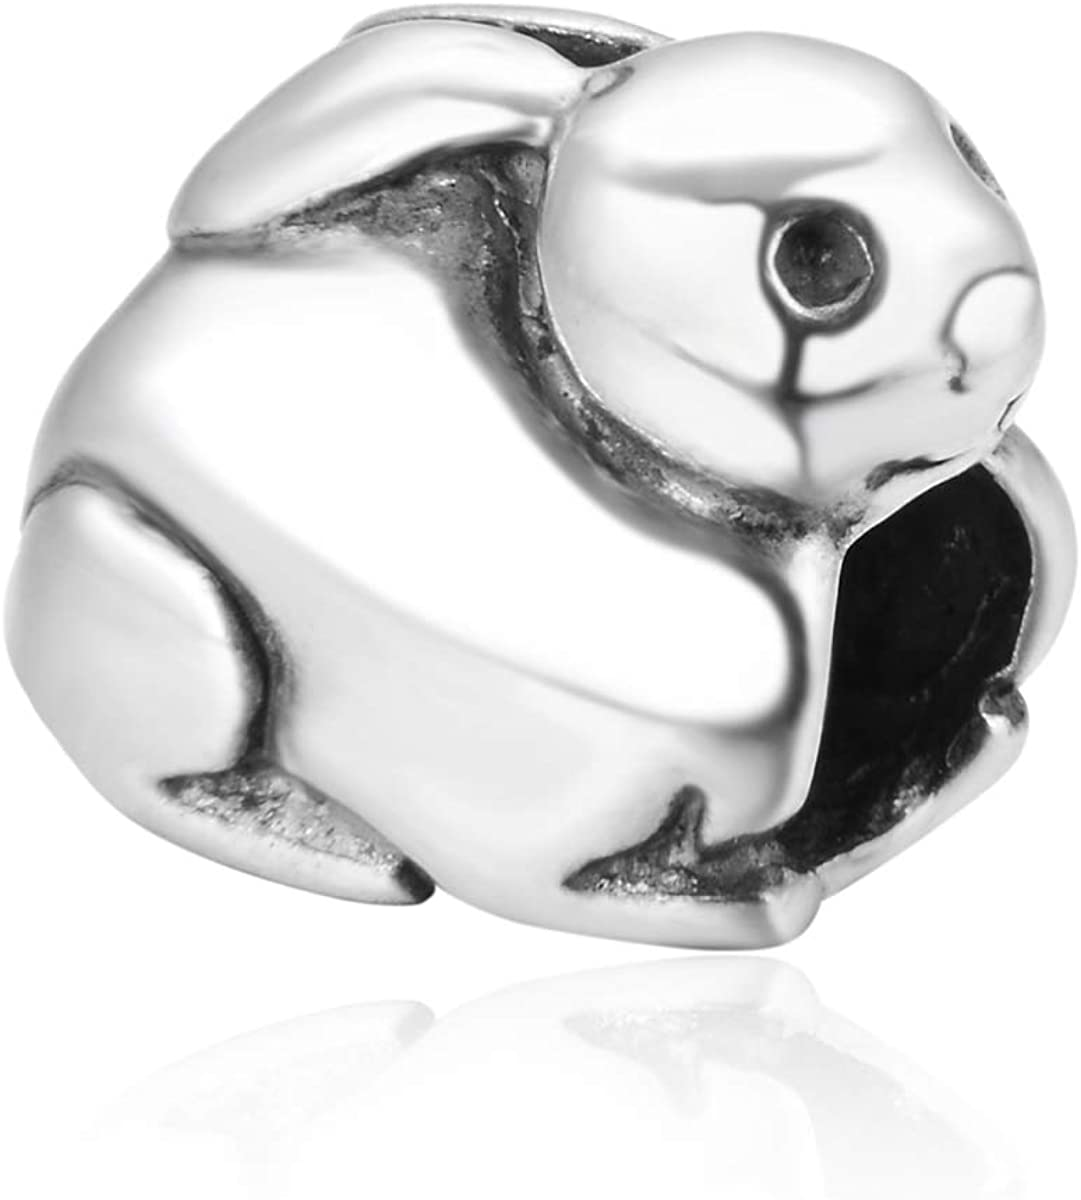 925 Sterling Silver Rabbit Charm Easter Bunny Animal Bead Fits All Charm Bracelet Necklace Women Birthday Gift Compatible with Pandora EC163